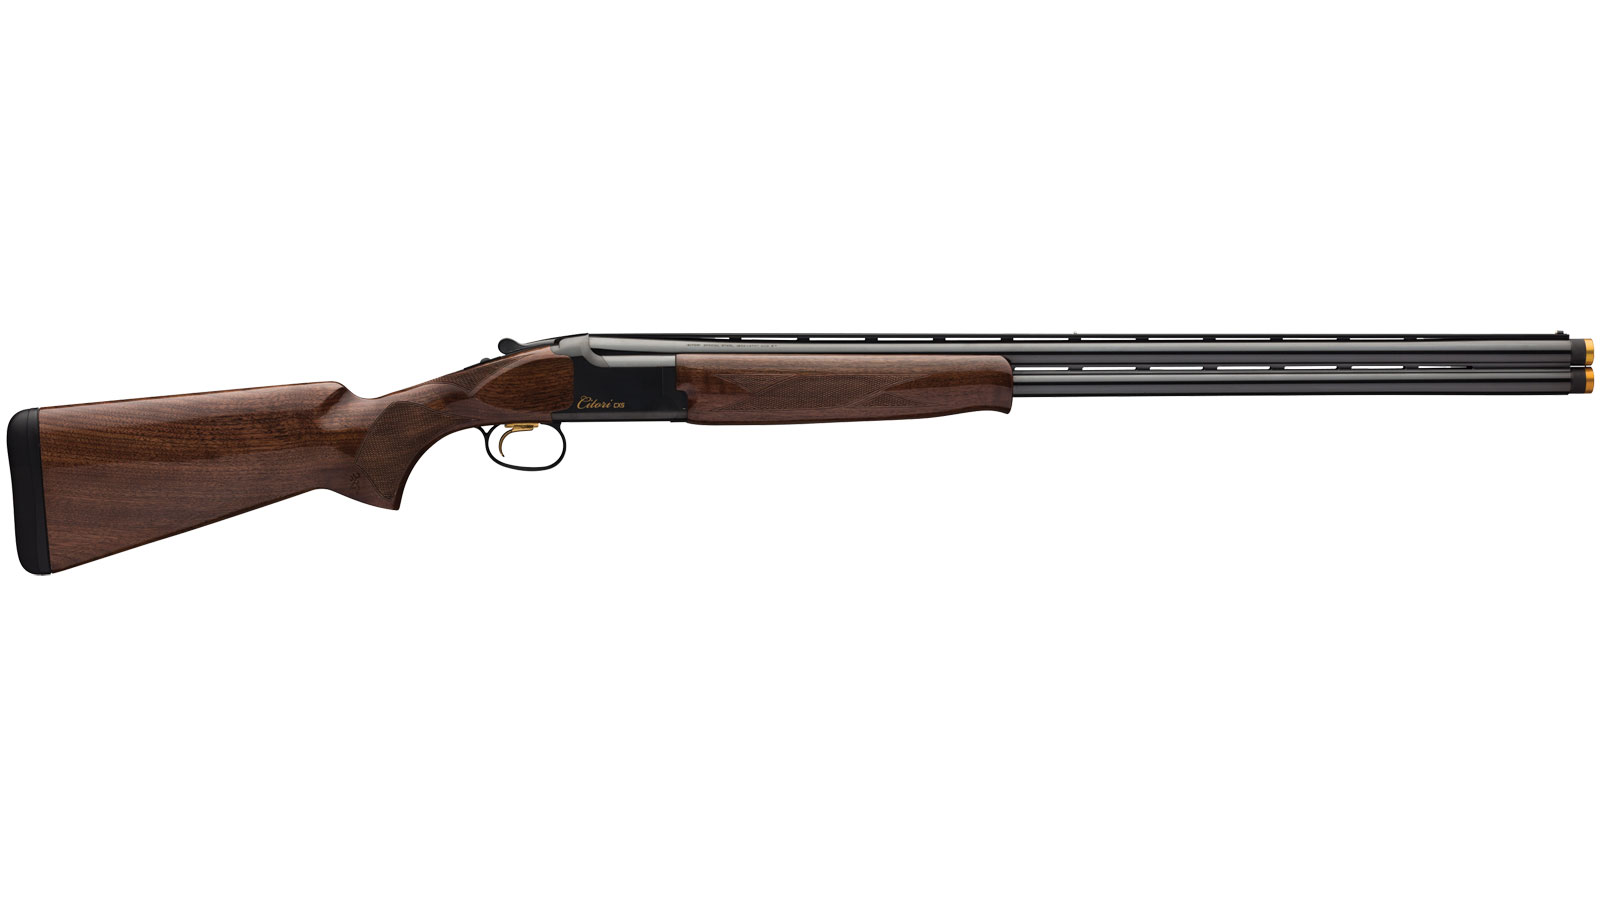 Browning 018073303 Citori CXS Over|Under 12 Gauge 30 3 in.  Black Walnut Stk Blued Steel in.